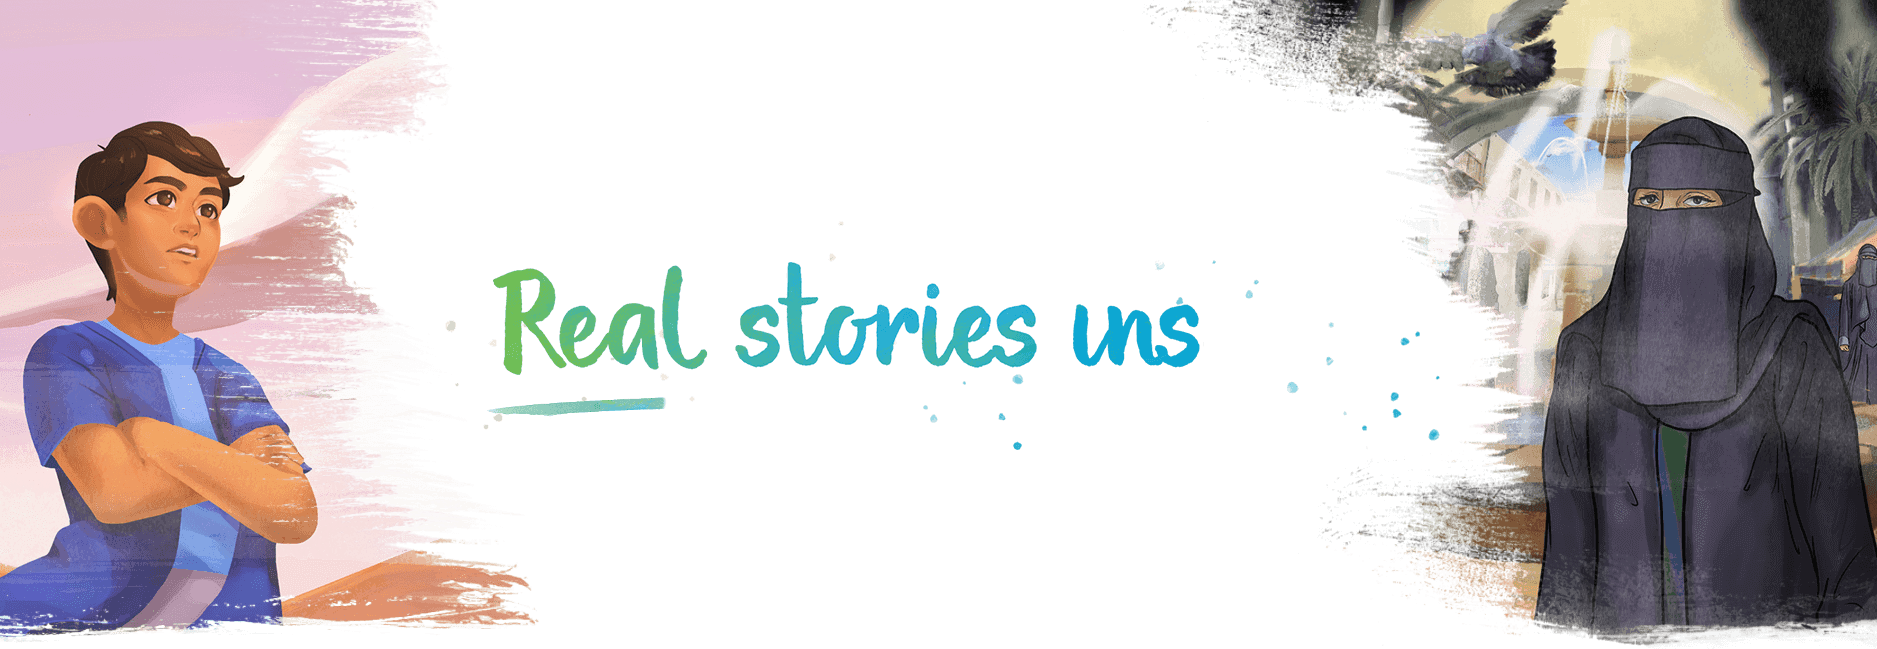 Real stories inspire